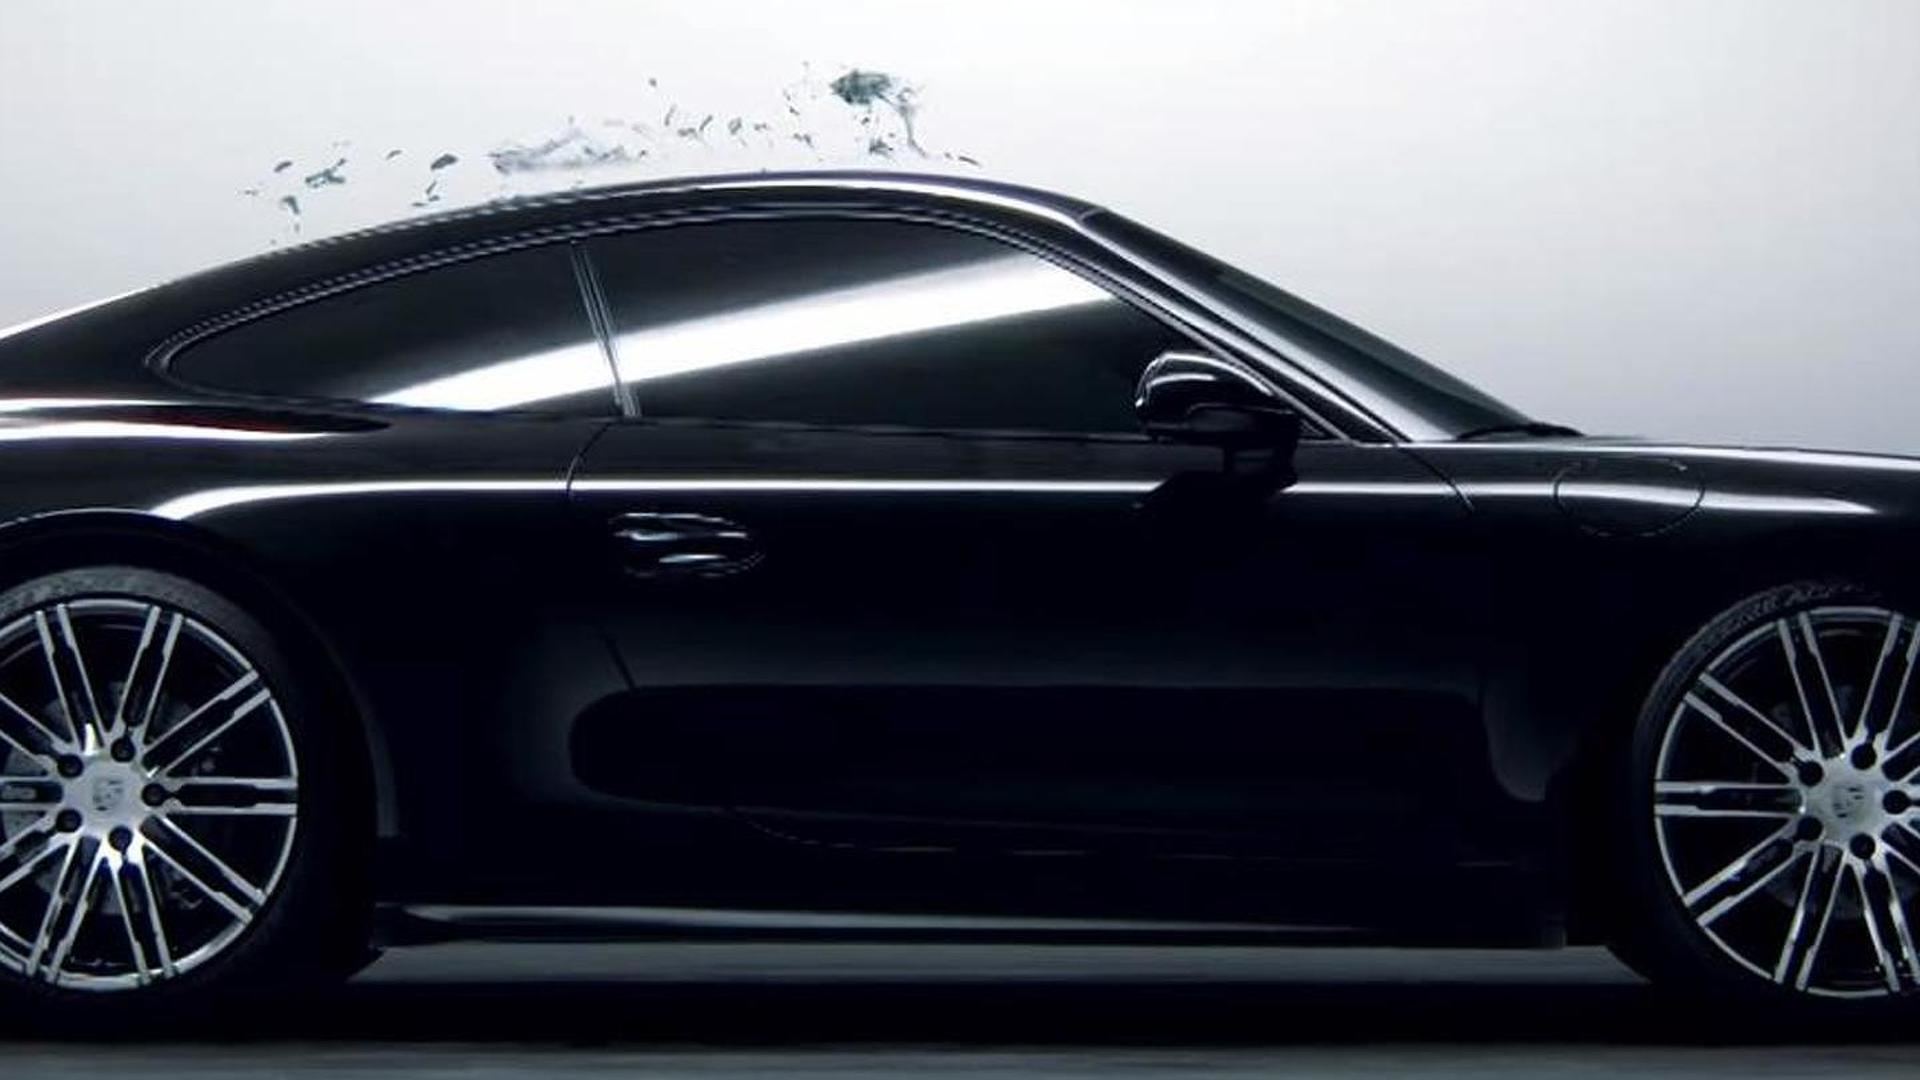 porsche 911 black edition comes to life from black ink in latest promo video product 2015 07 27 162855 - 911 Porsche Black